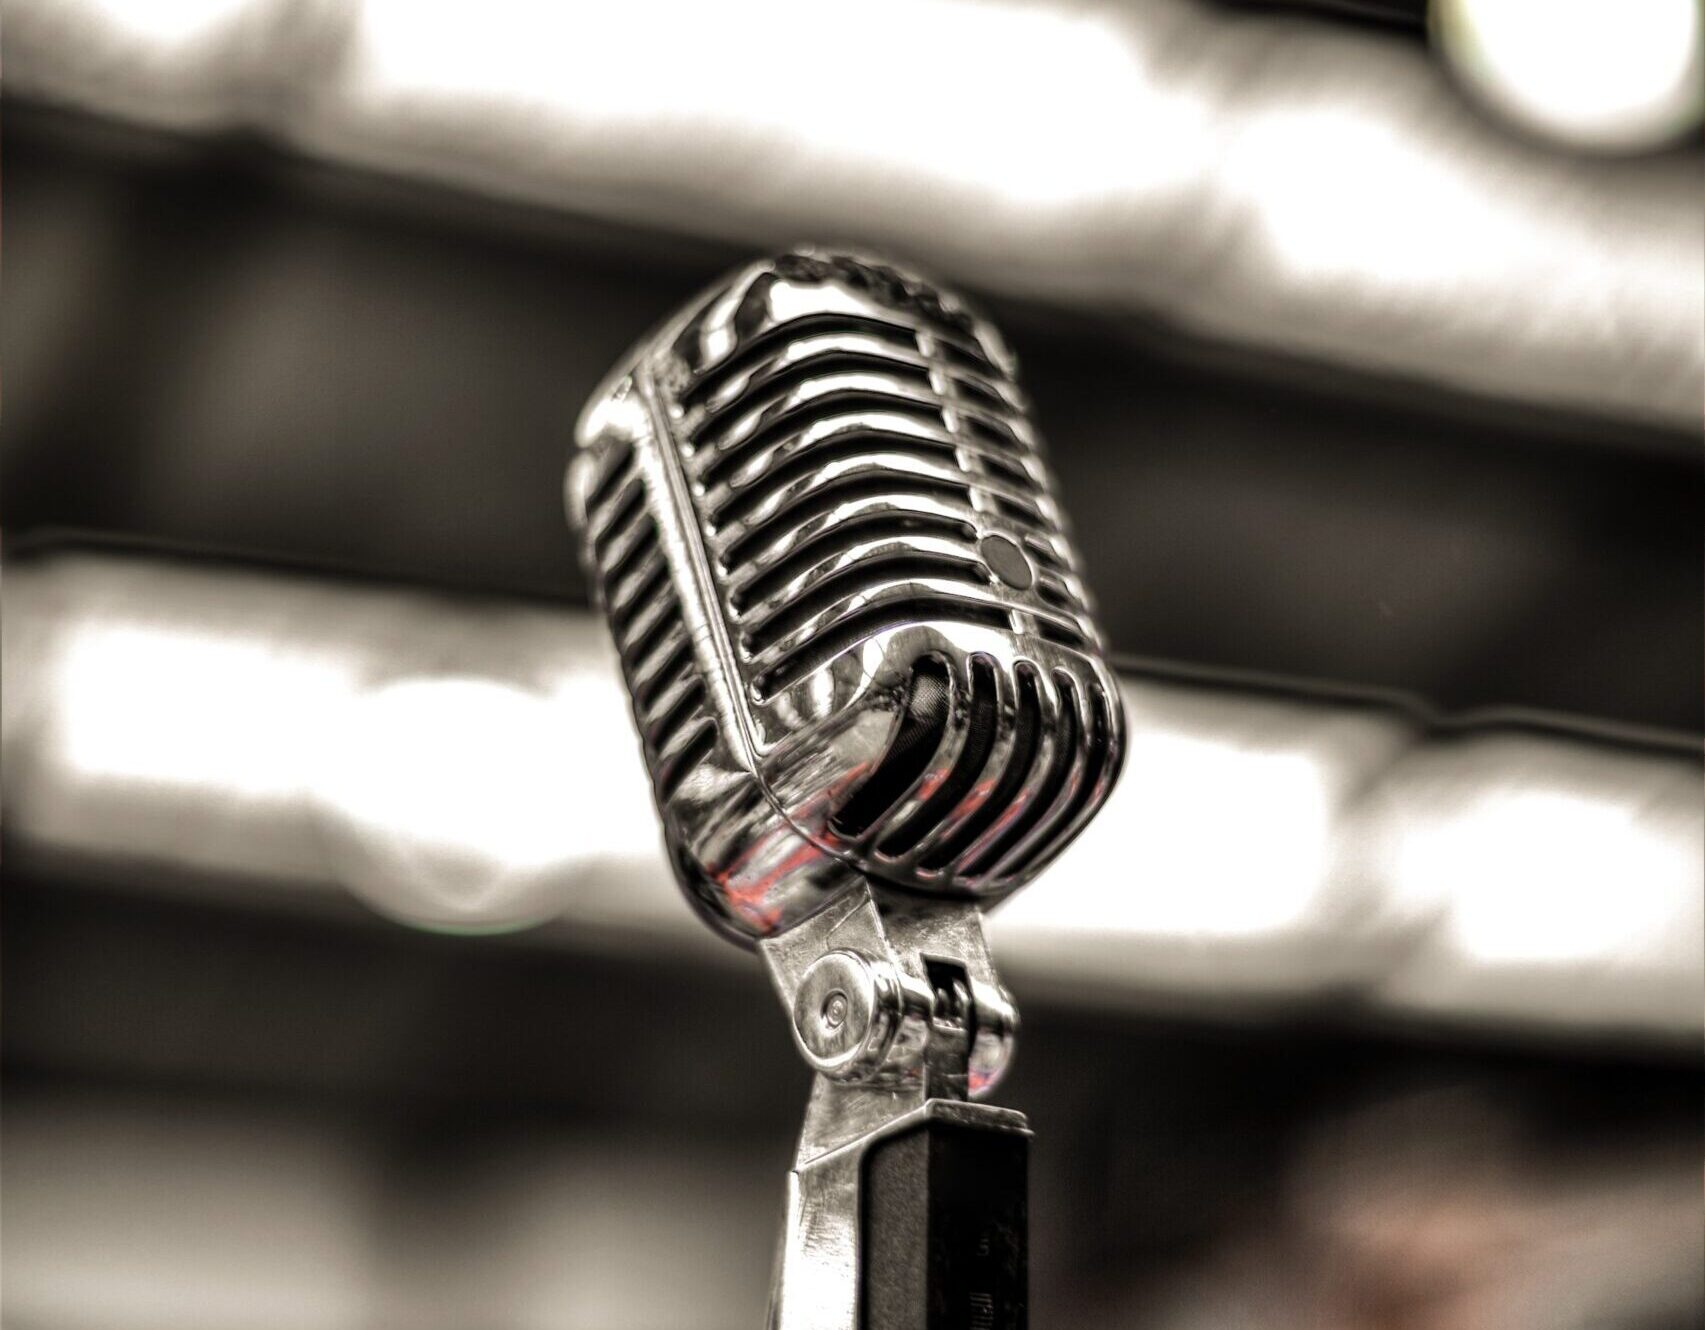 Microphone - cropped - Rachel Writes press release writing service